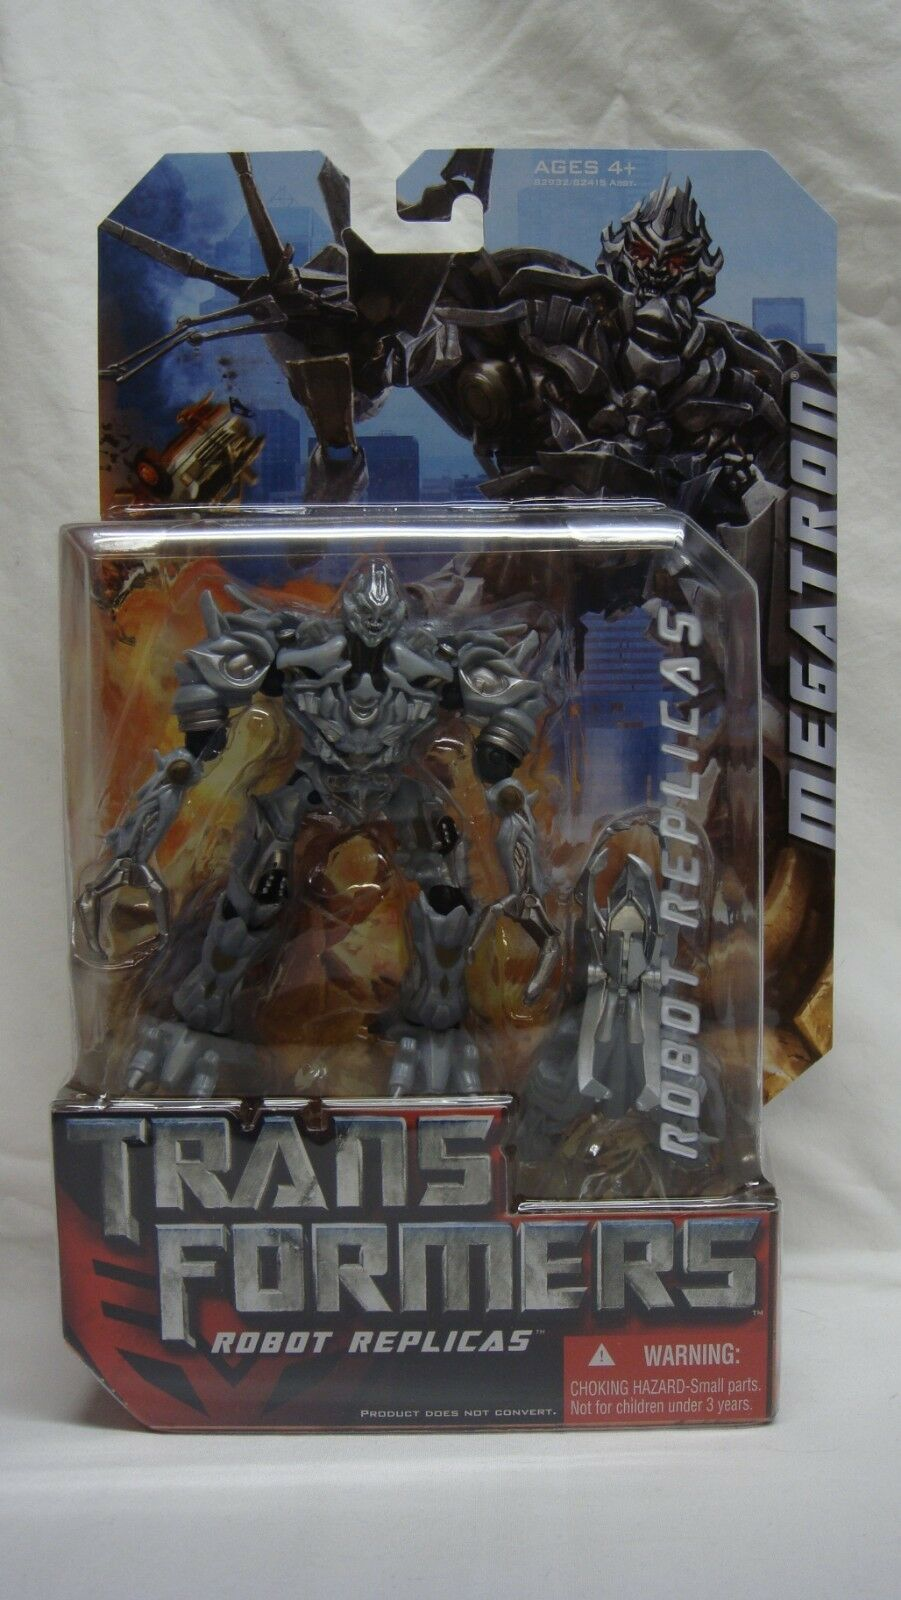 TRANSFORMERS MOVIE ROBOT REPLICAS DECEPTICON MEGATRON NEAR NEAR NEAR MINT SEALED  8fea83